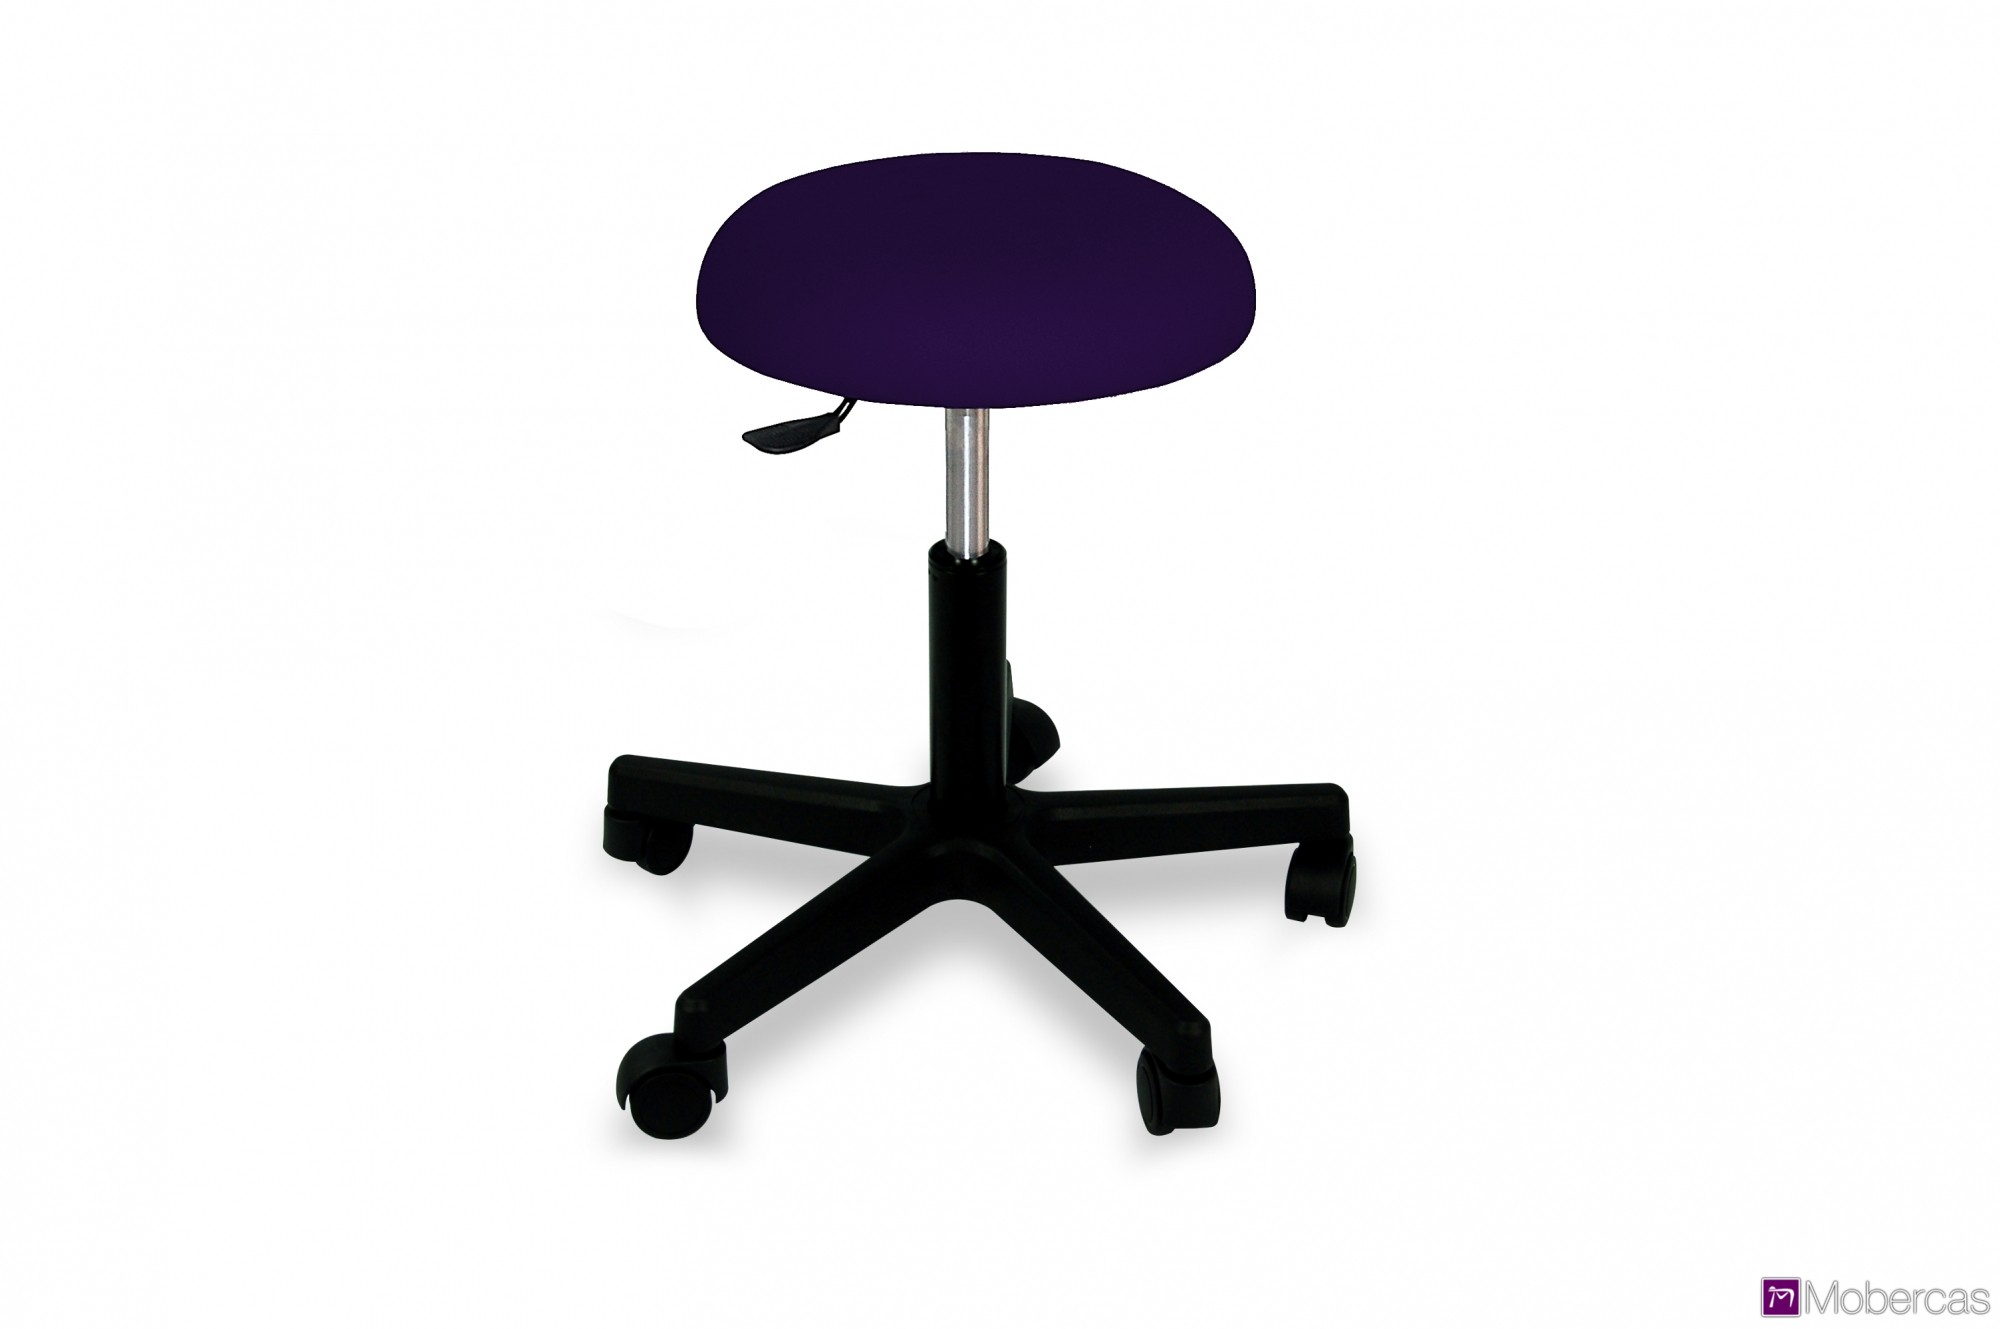 Tabouret medical Gamme 3